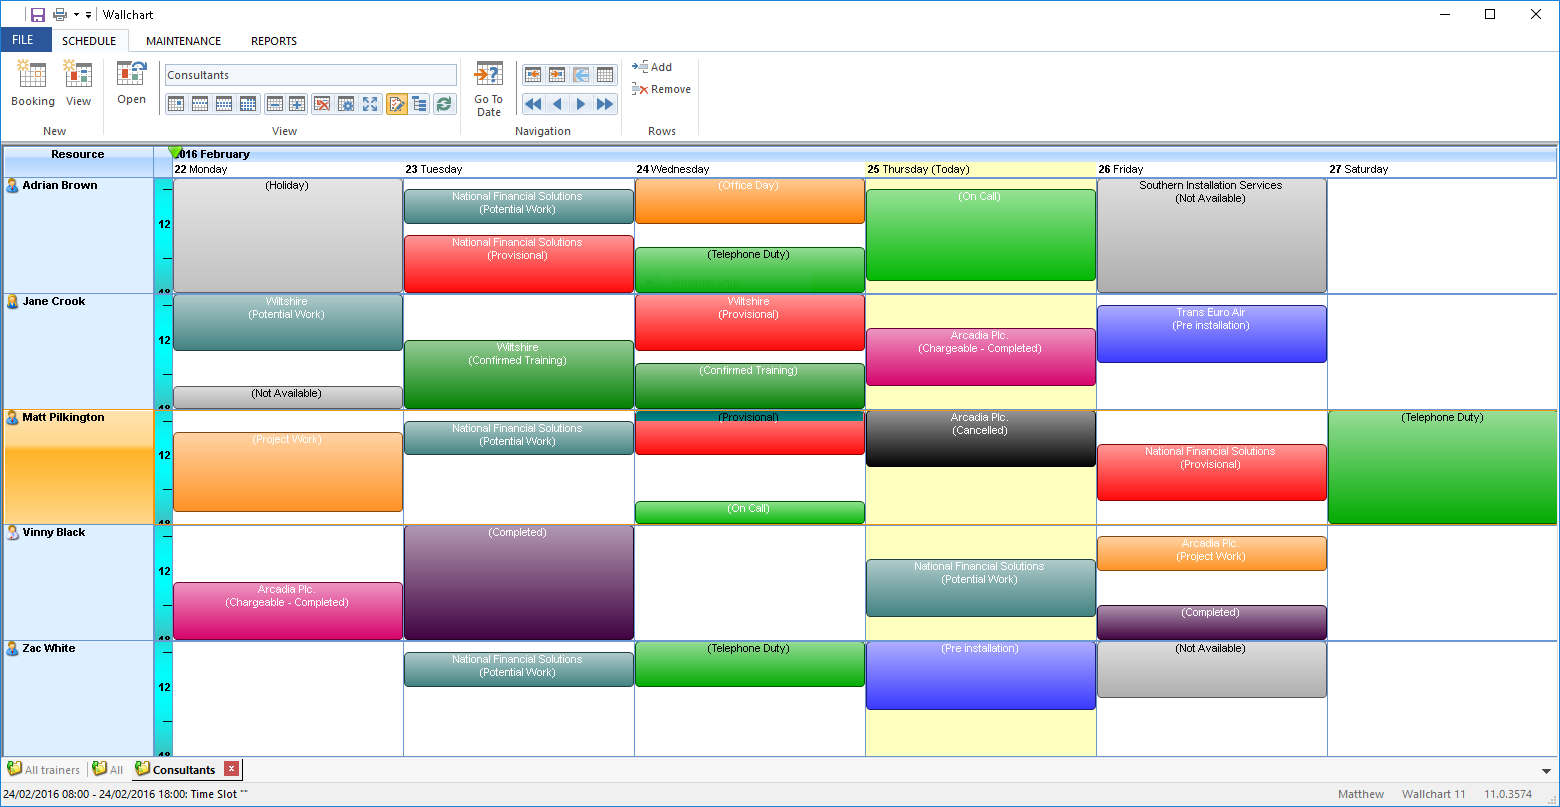 Wallchart for Windows Version 11